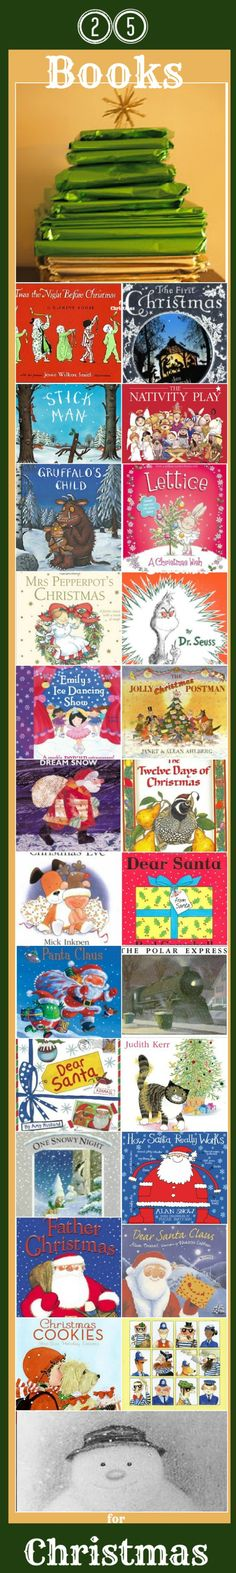 25 Christmas books for kids. Perfect for ADVENT create a FUN alternative advent countdown with a festive book every day.